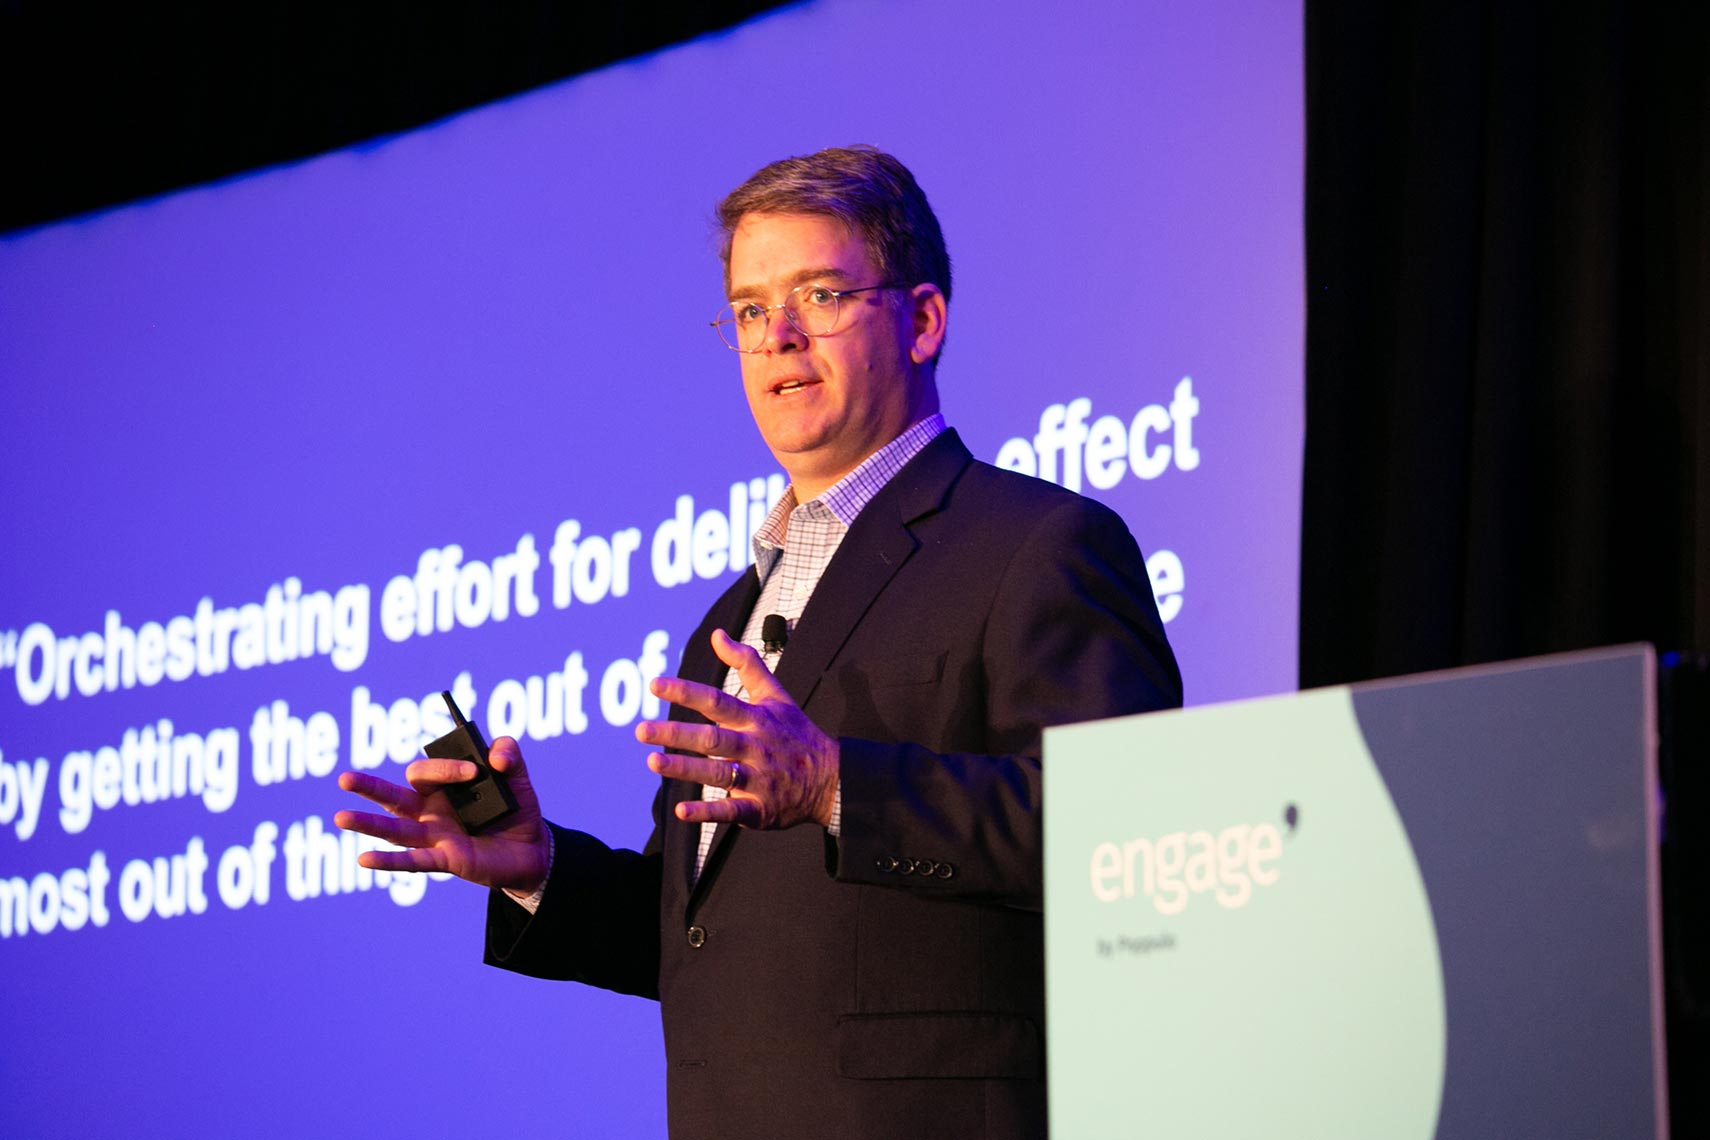 John Alderman speaking at Engage Boston